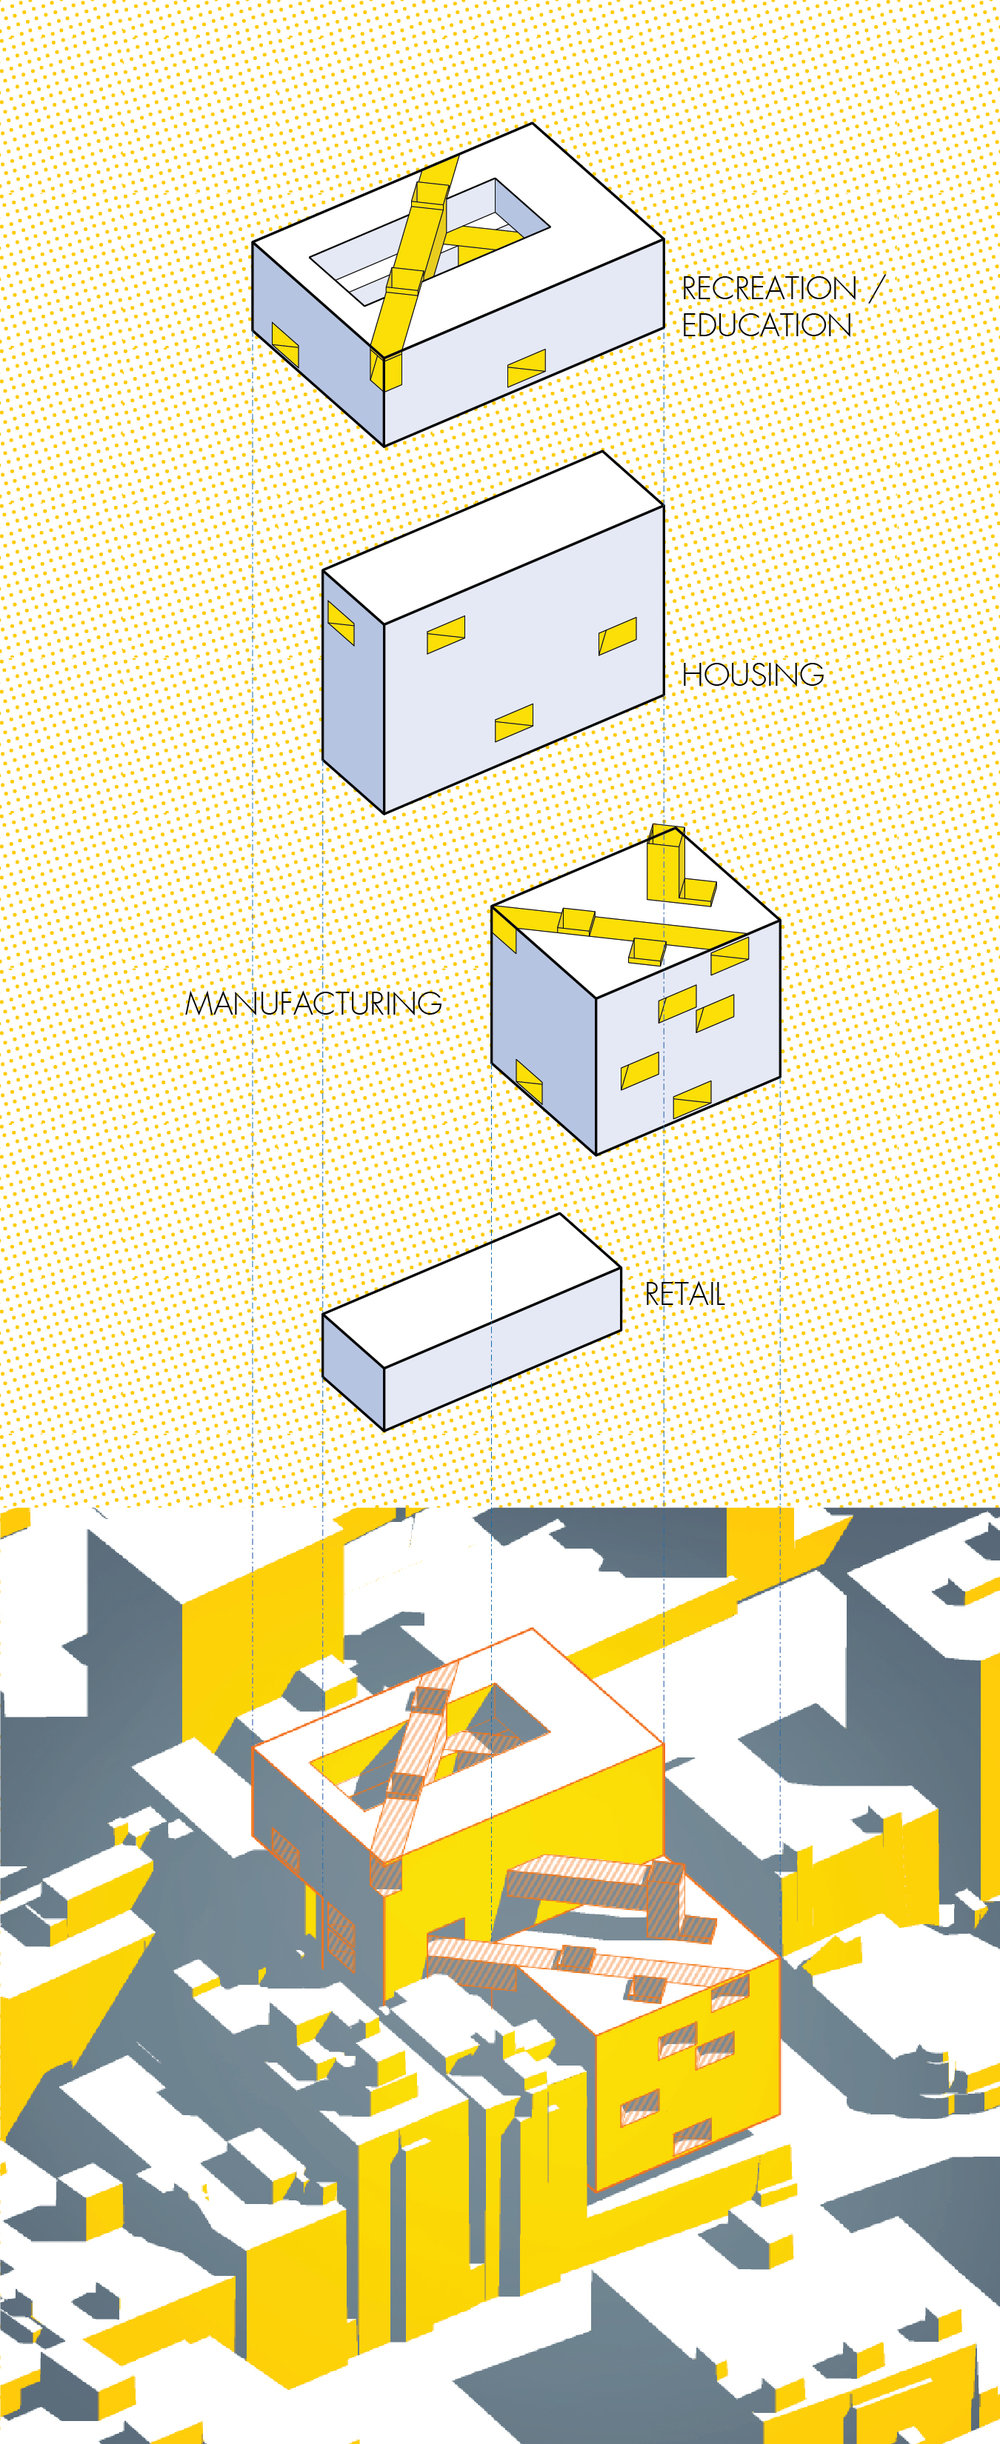 CONTEXTUAL MASSING BLOCKS